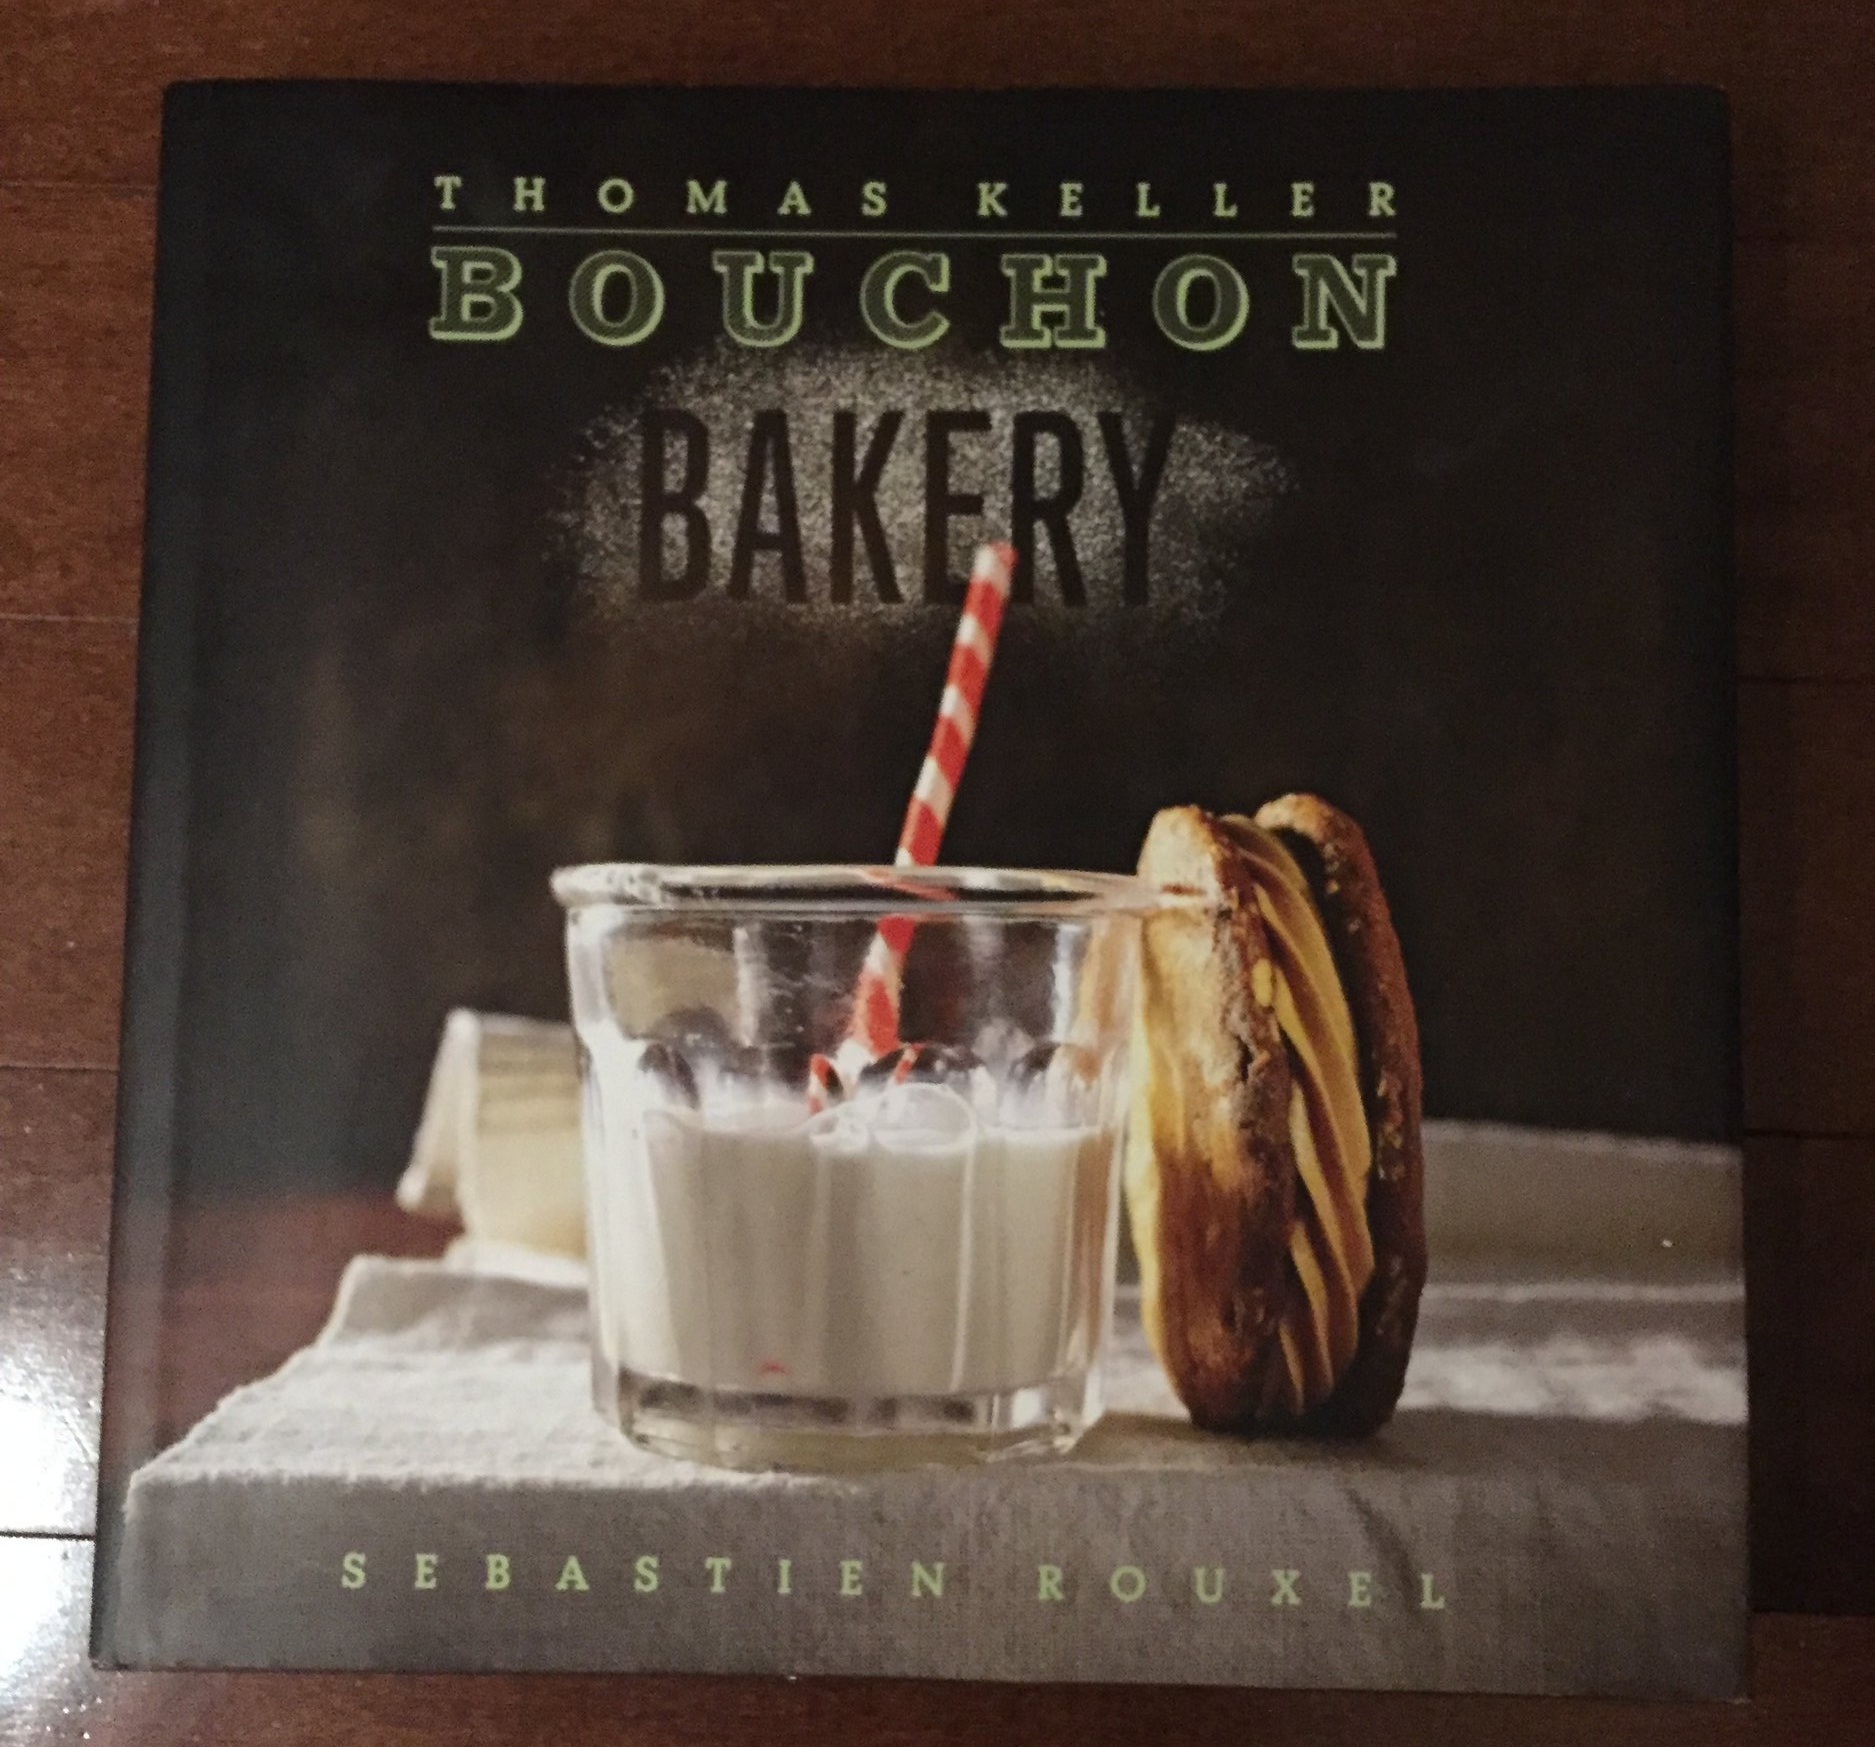 Bouchon Bakery. I was given this book about 6 years ago and I love it so much. It's one of those books that has food stuck to the pages because it's been used a lot. Yes this is a more advanced cookbook for all things sweet, but everything I have made has been outstanding. In terms of desserts, sweets and pasteries this book is excellent and really educational.